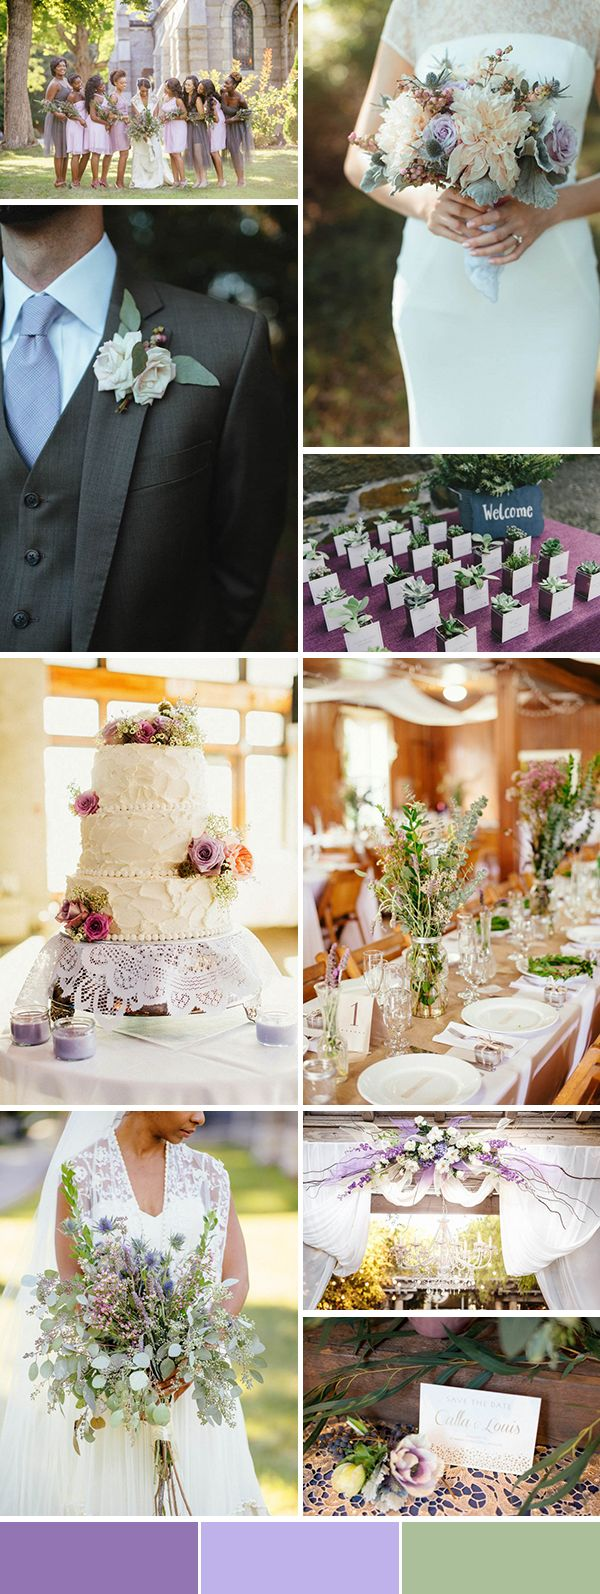 Lavender and Sage wedding color palette inspiration